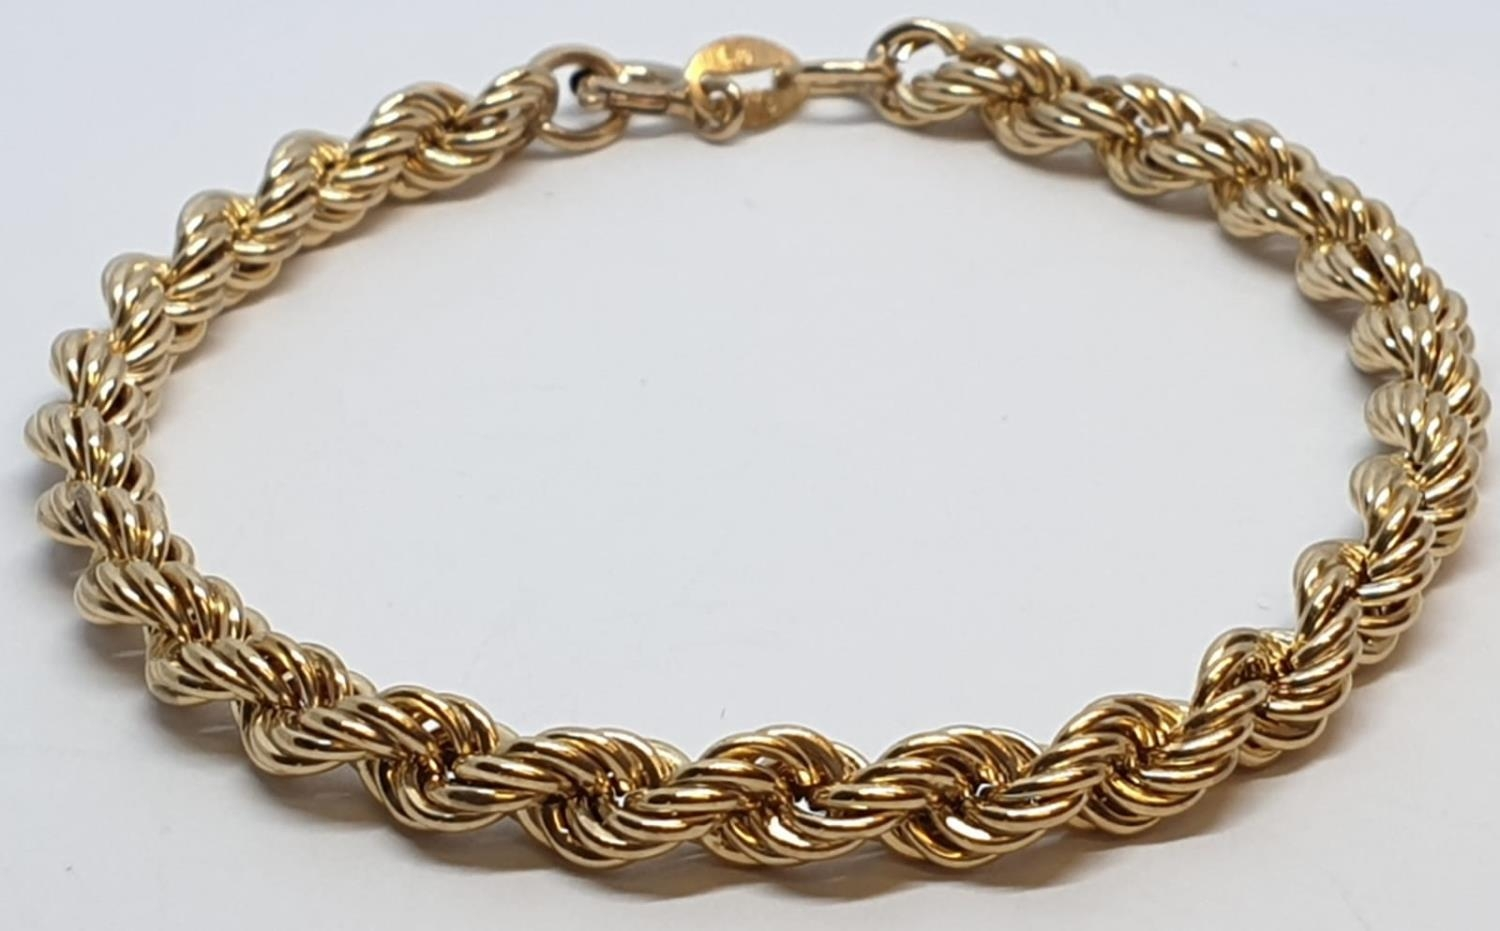 9ct Yellow gold rope bracelet. Weight 3.8g, Length 9cm.